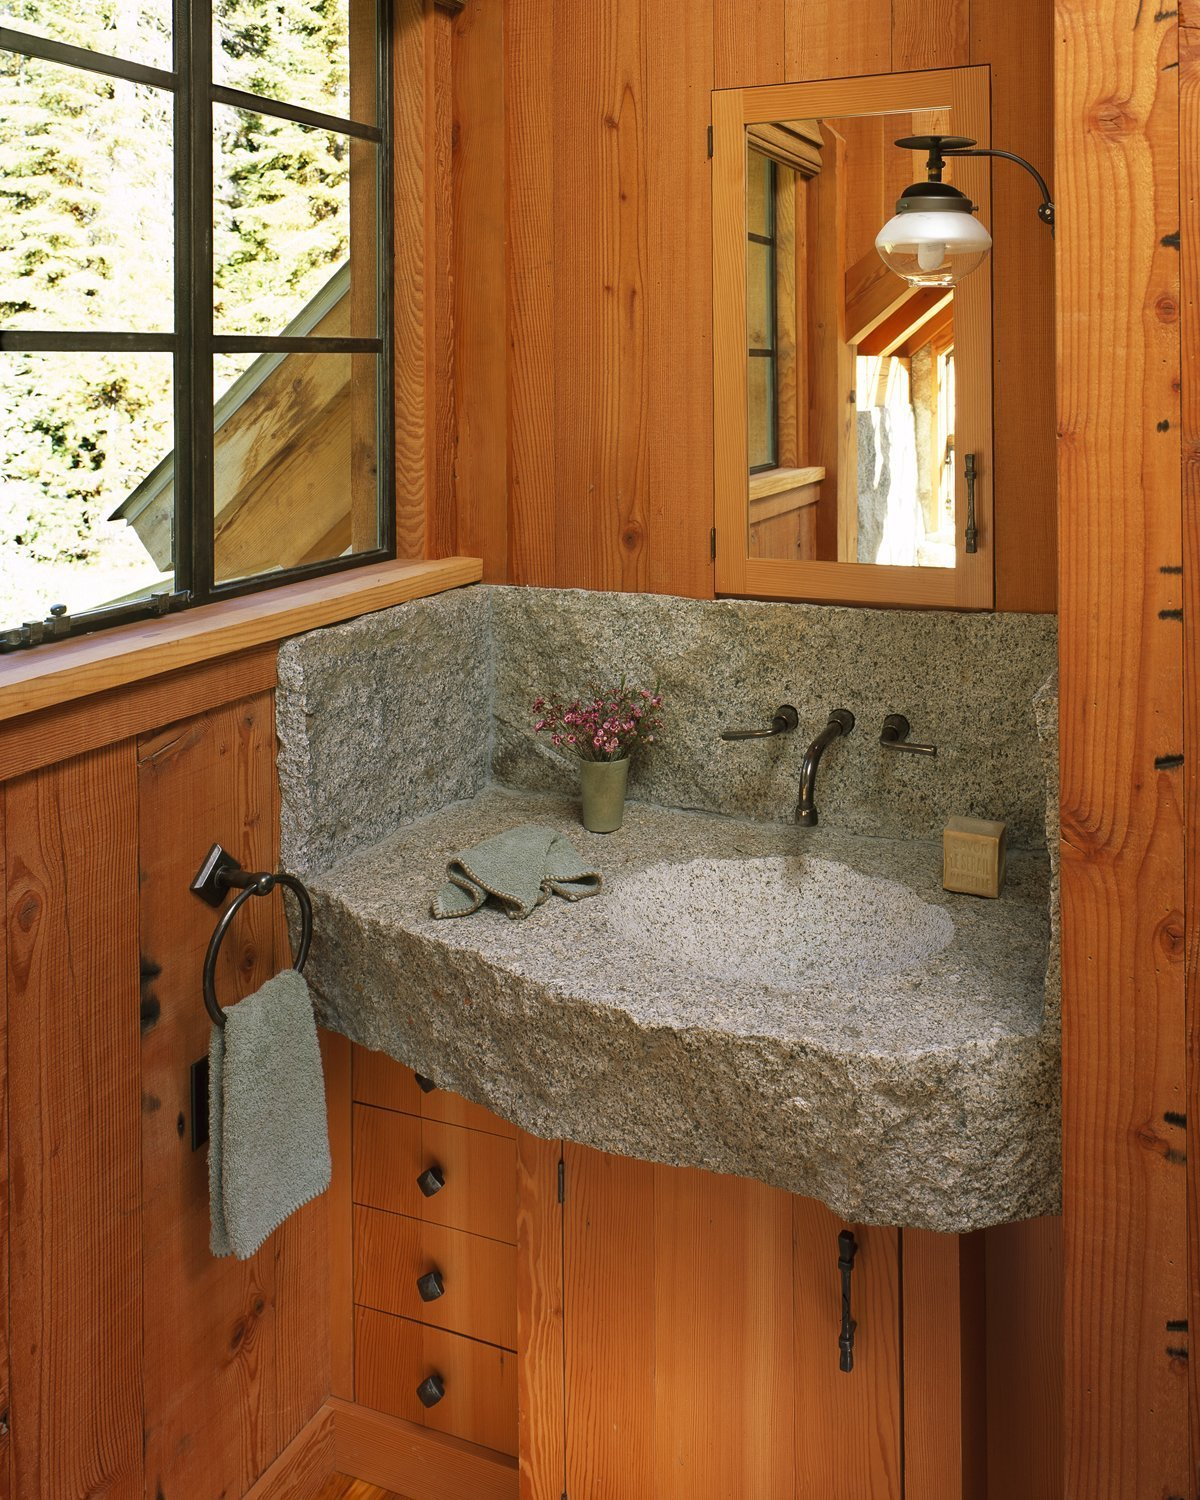 Bath Room, Concrete Counter, Medium Hardwood Floor, Wall Mount Sink, Wall Lighting, and Accent Lighting  Photo 7 of 11 in A Rustic Home Rivals the Rugged Beauty of Its Forest Setting